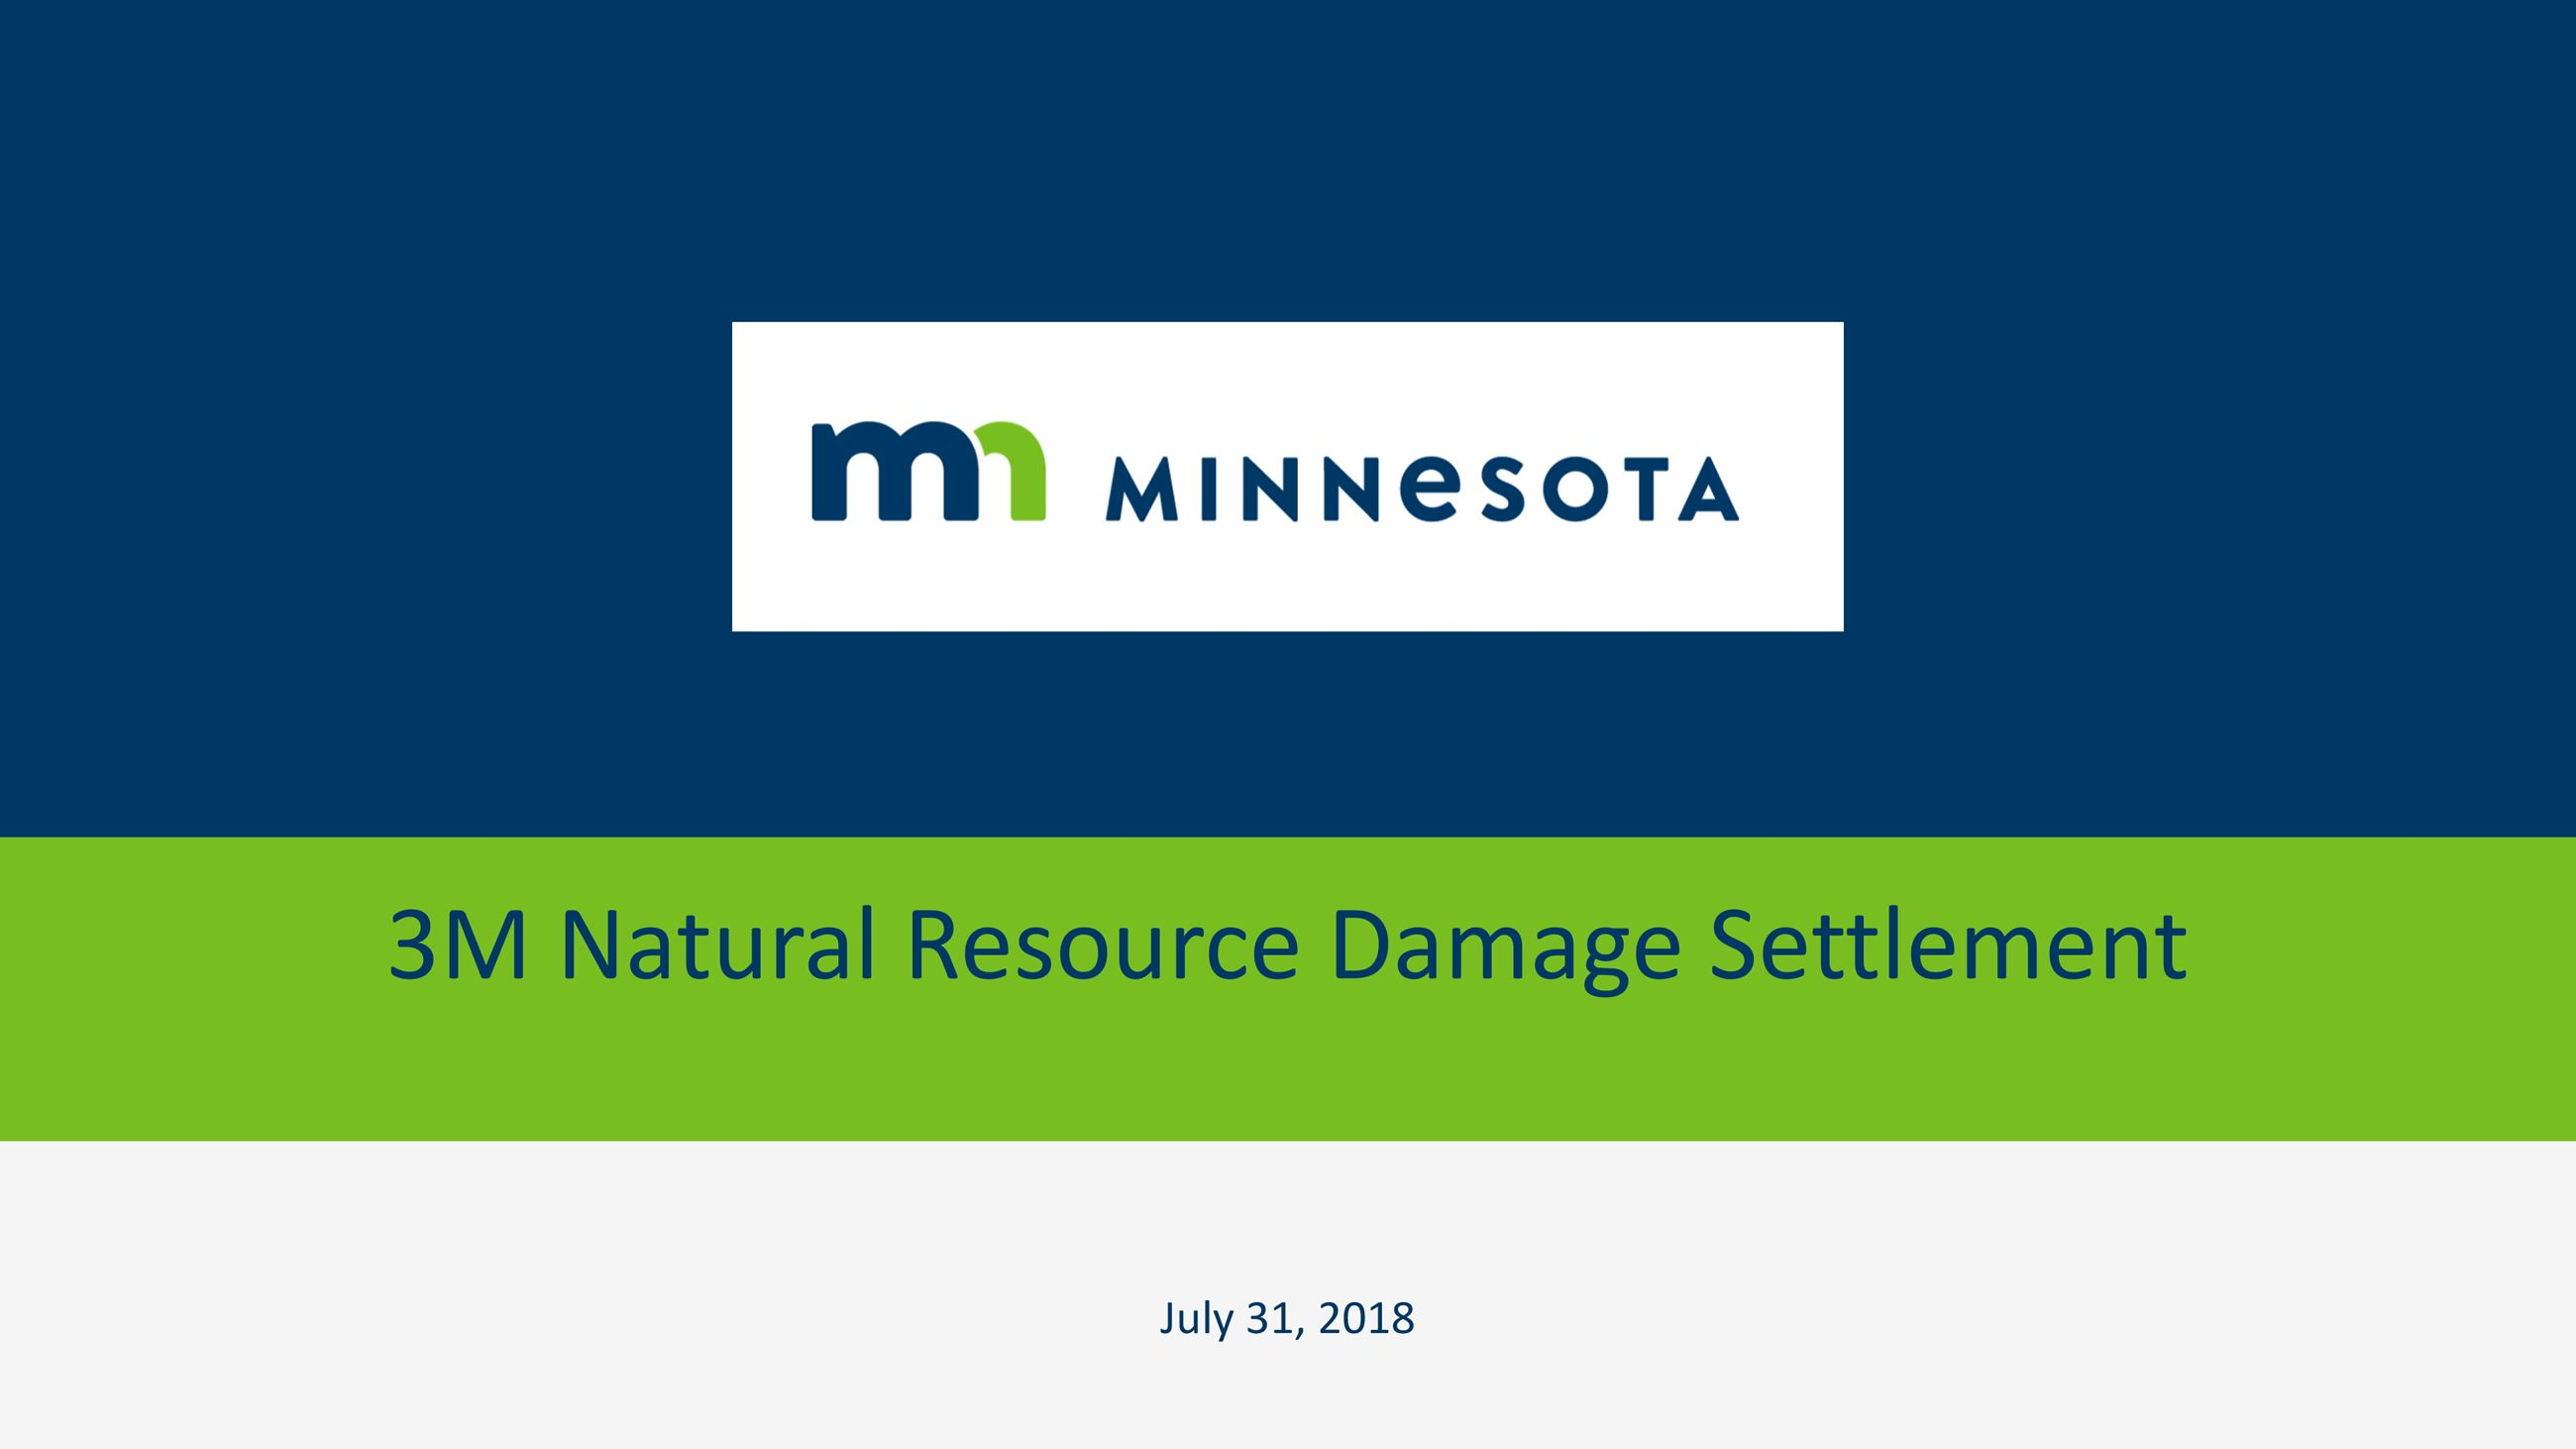 Title page in green and navy blue saying 3M natural resource damage settlement